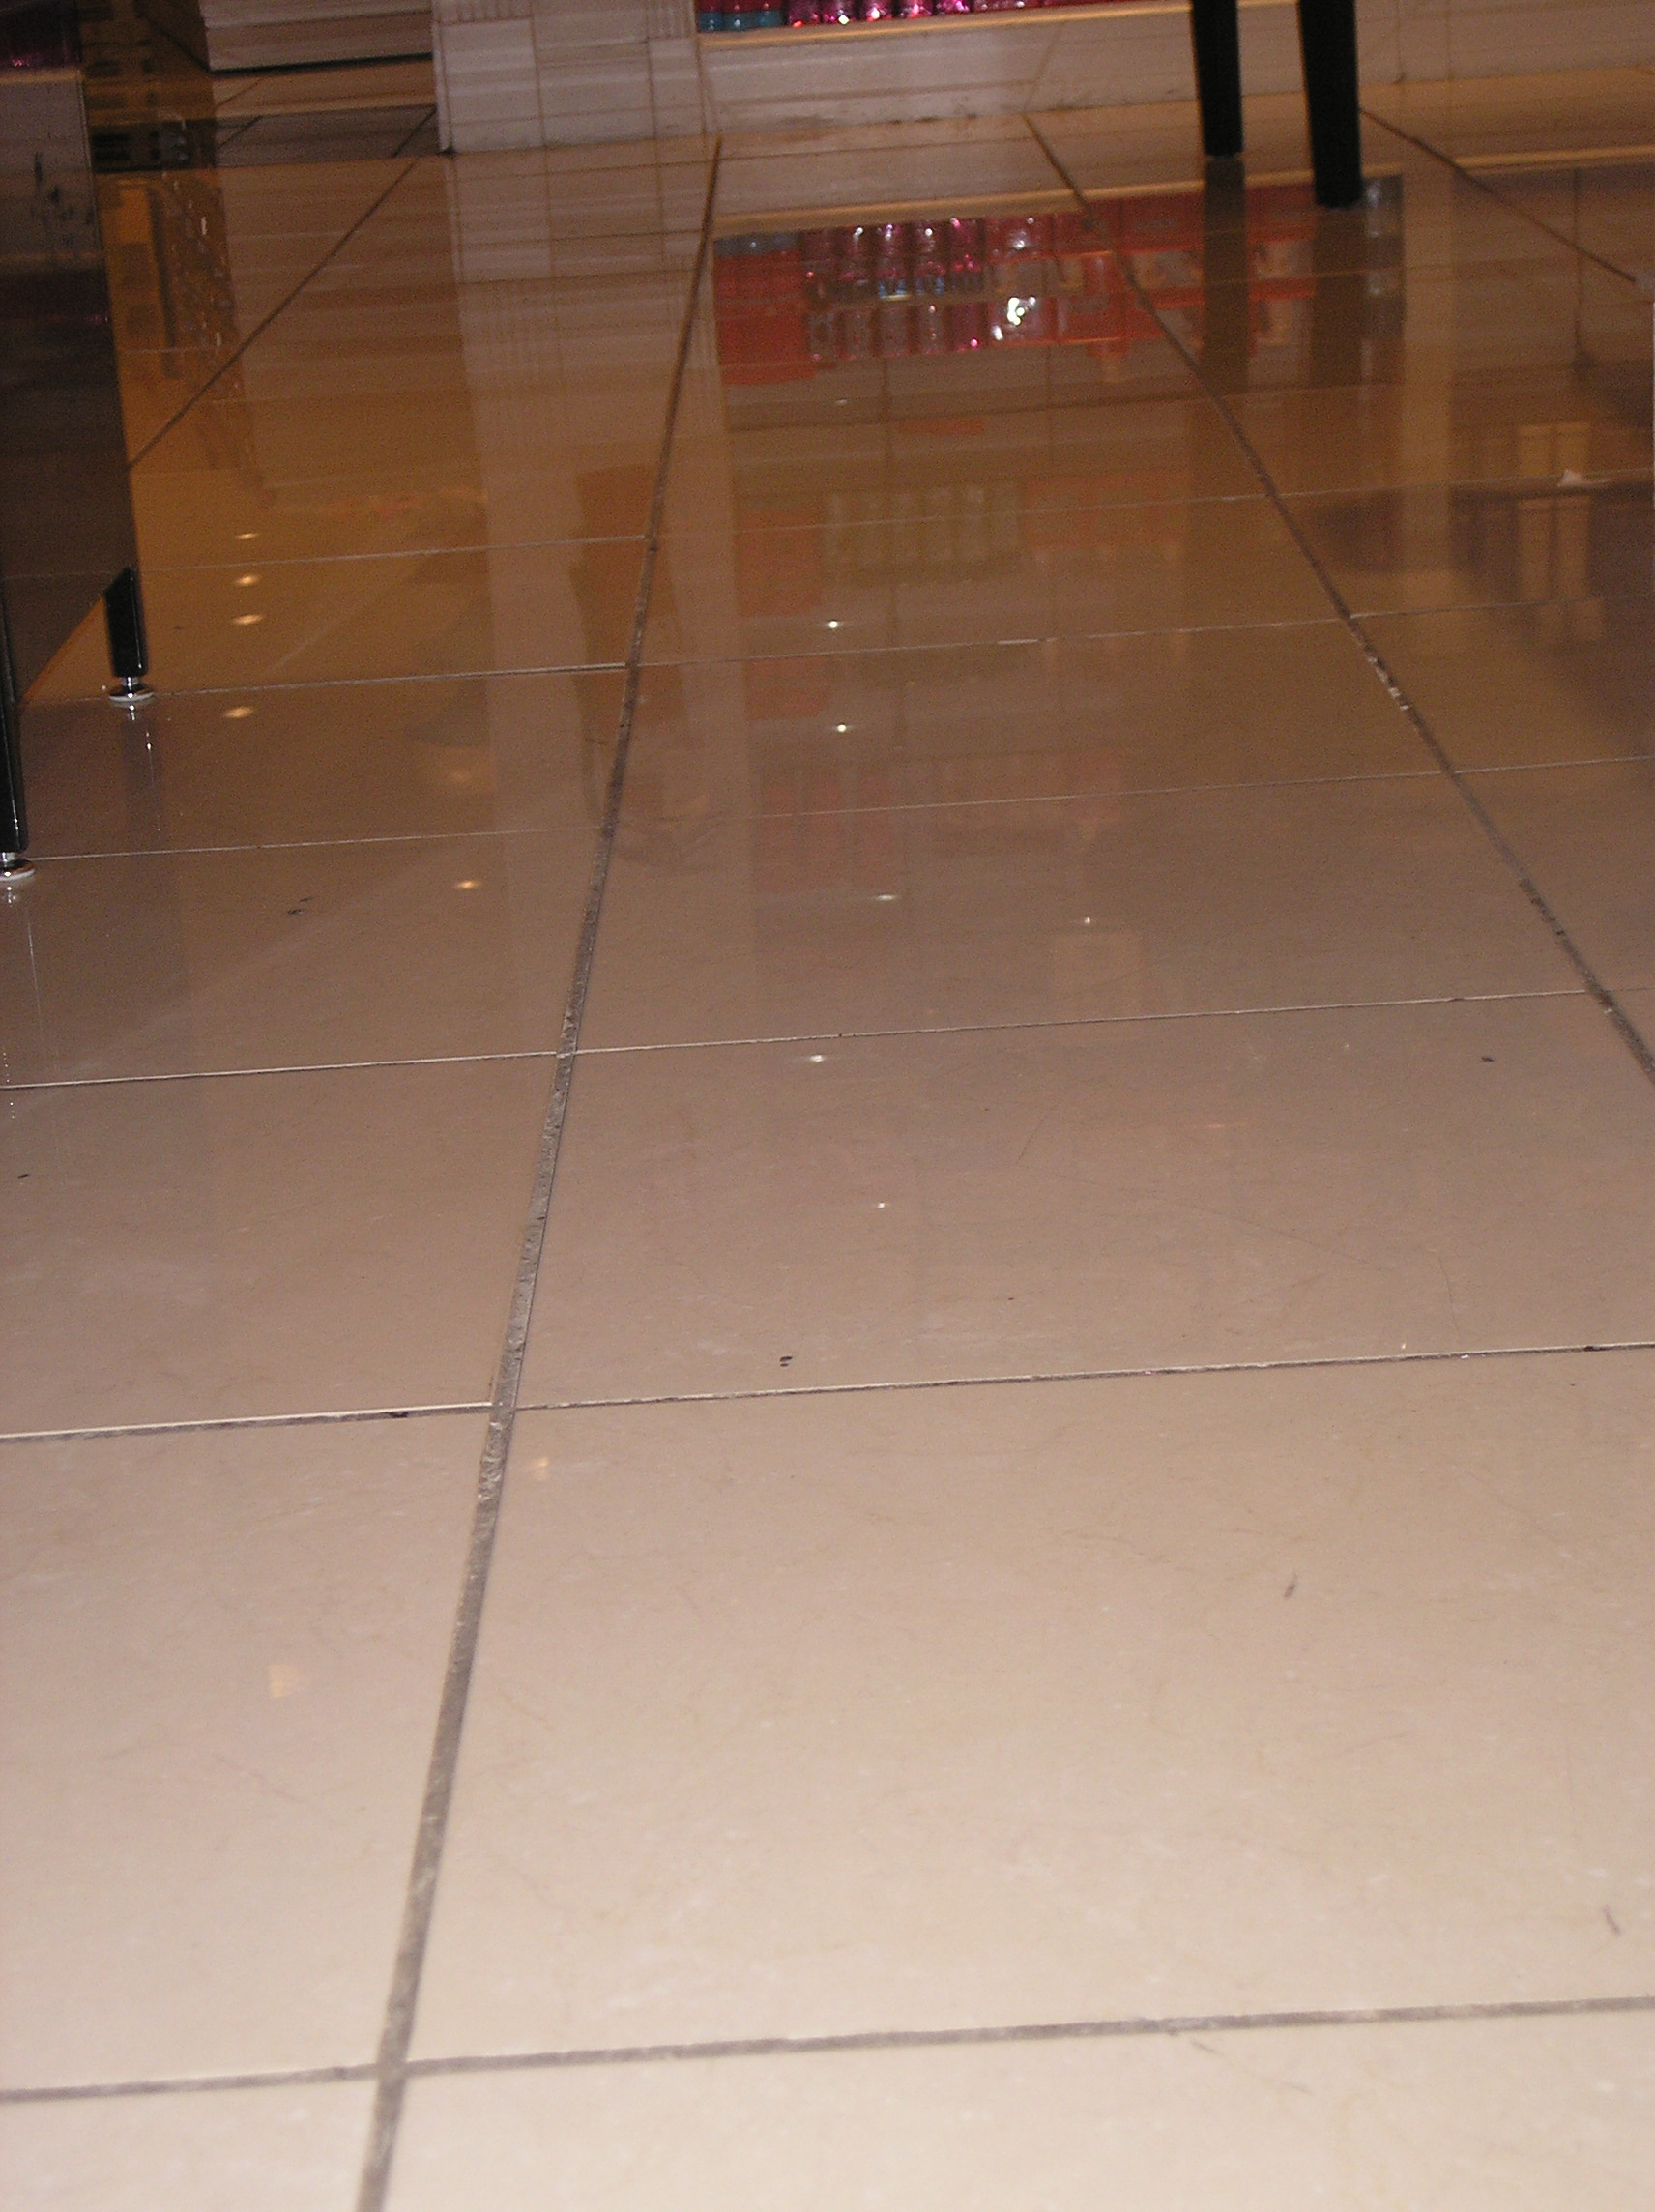 Tile and grout cleaning p j cleaning service llc our professional tile and grout cleaning service restores the luster to your floors making them look like new dailygadgetfo Images